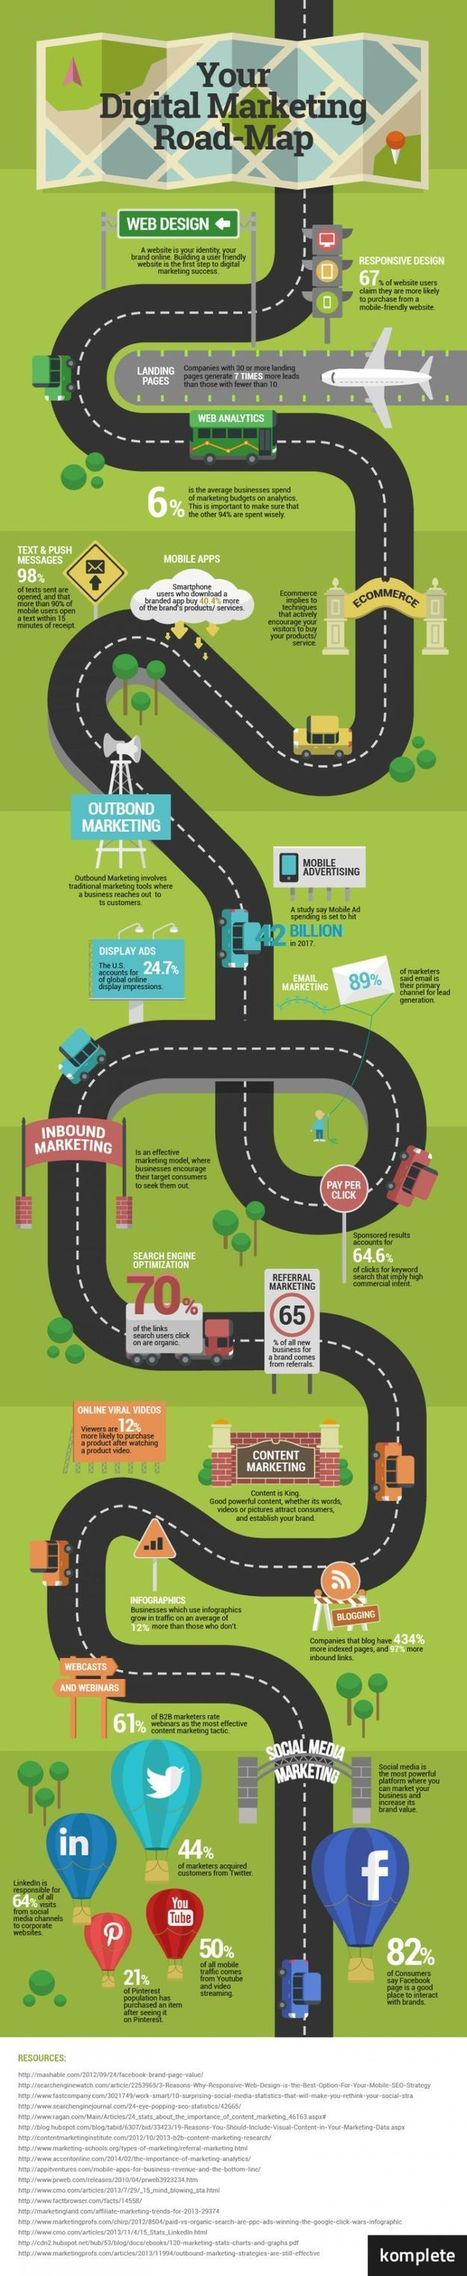 Infographic: Your Digital Marketing Roadmap | Medical education in the digital age | Scoop.it